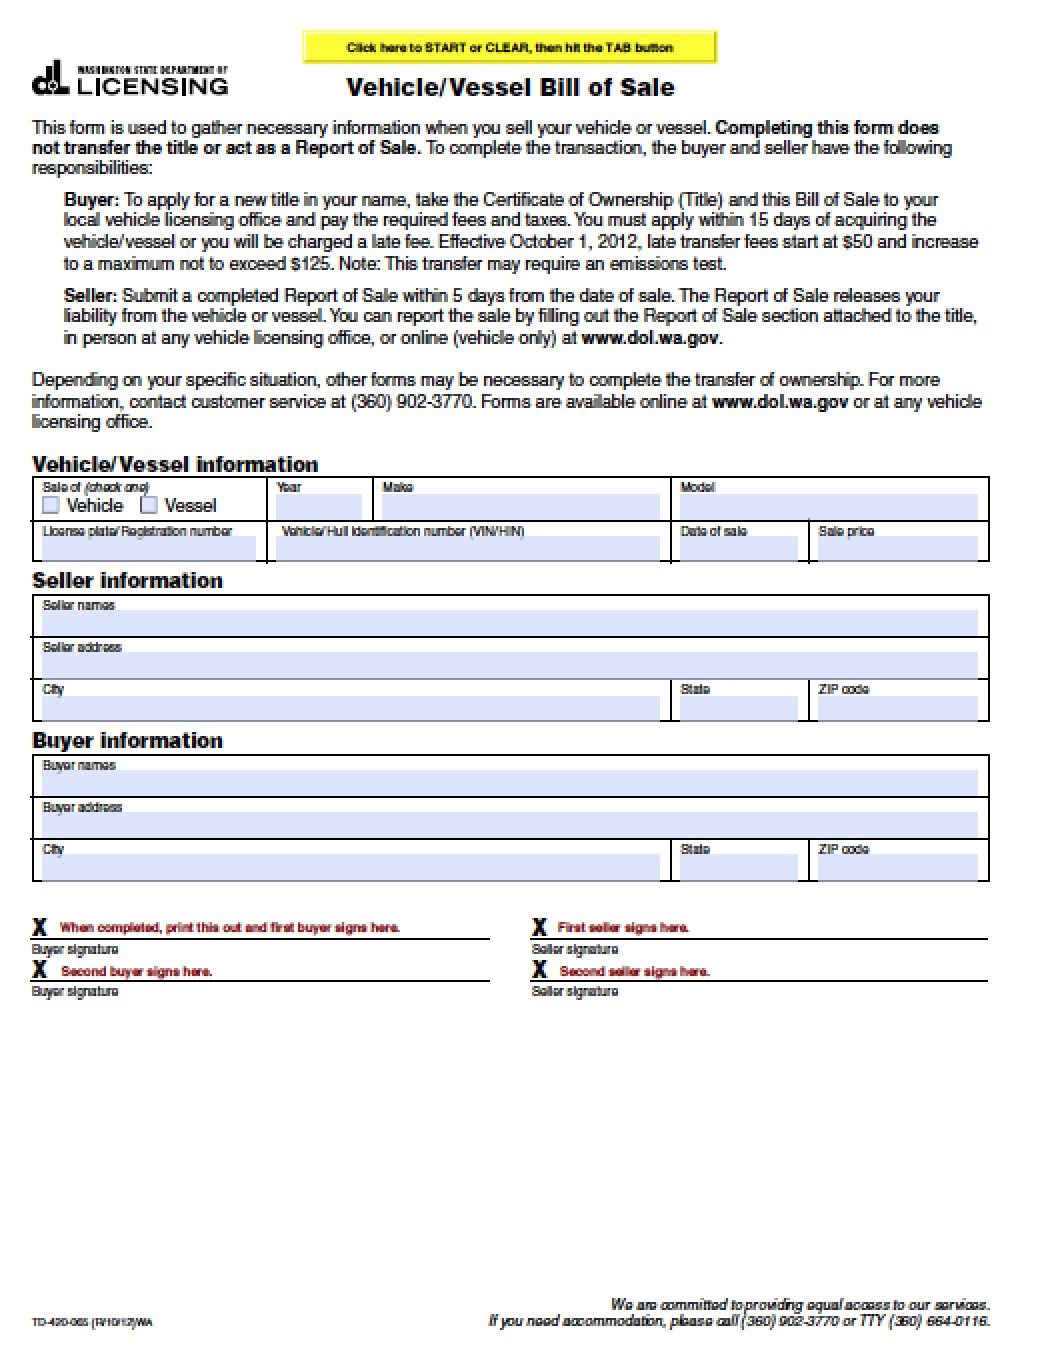 bill of sale template wa - free washington vehicle vessel bill of sale form pdf